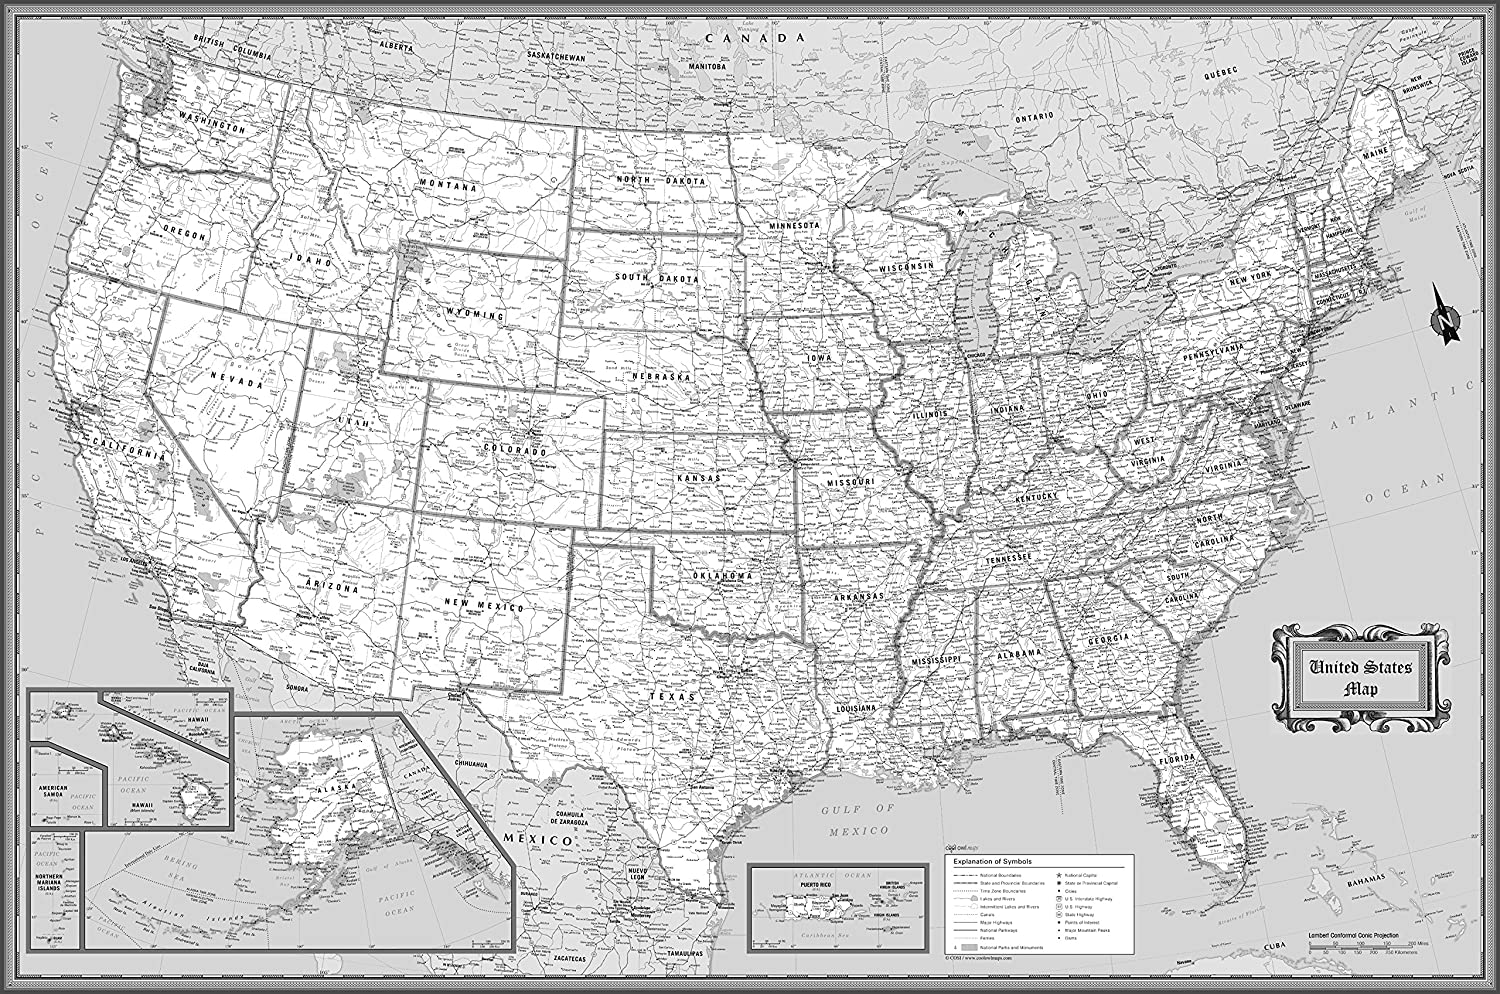 Amazoncom CoolOwlMaps United States Wall Map Black White - Black and white map of us